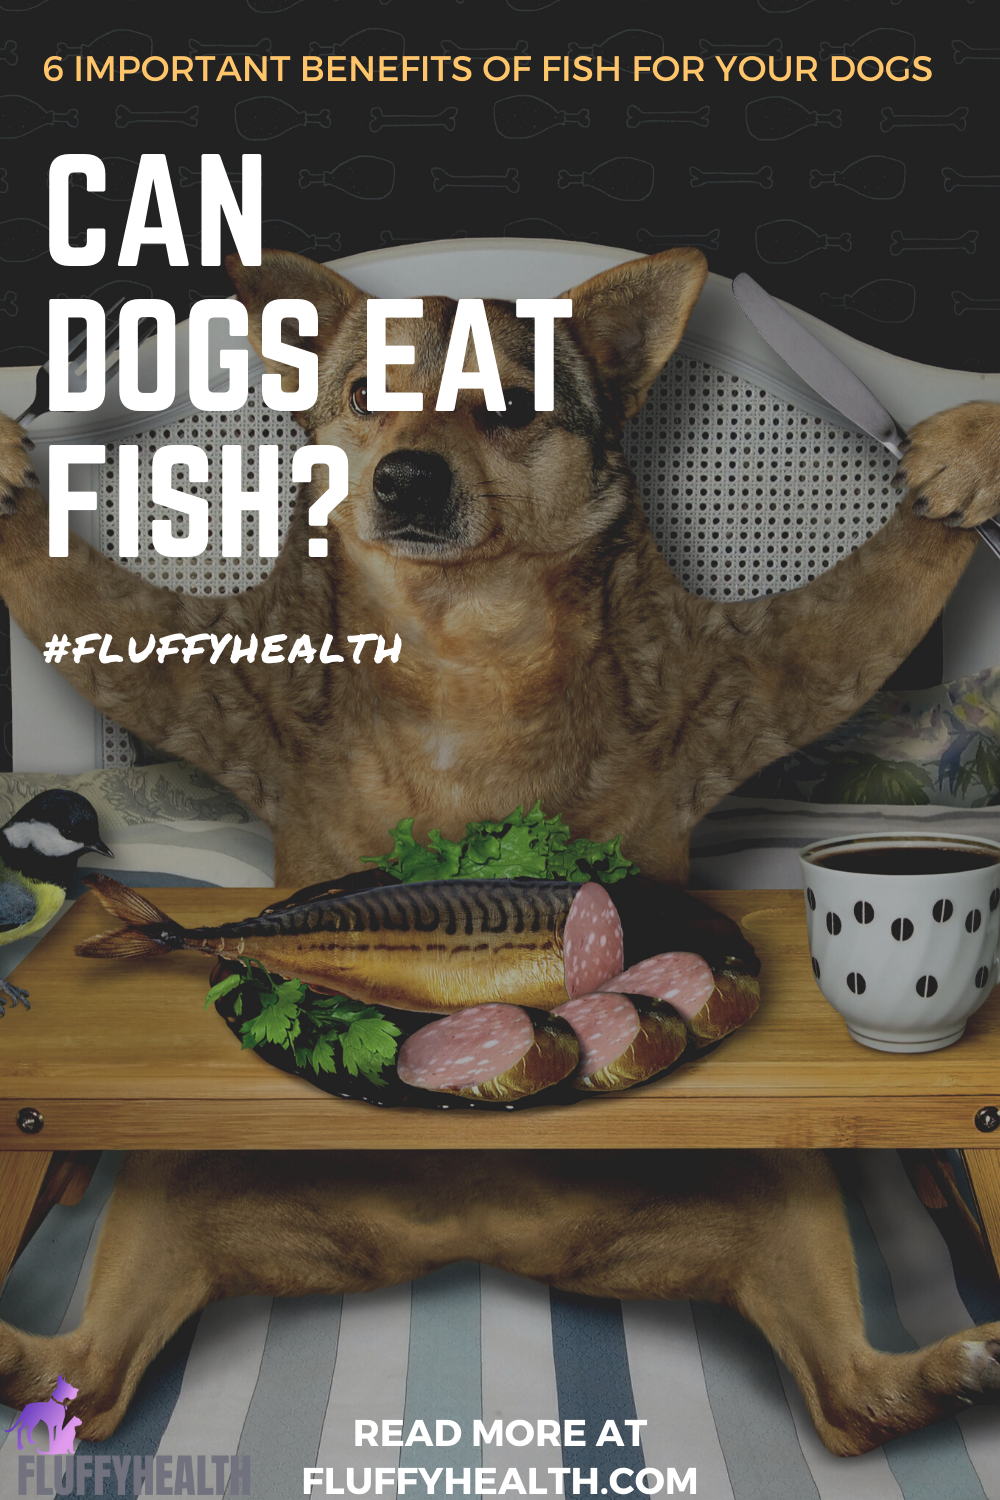 can-dogs-eat-fish-image-4